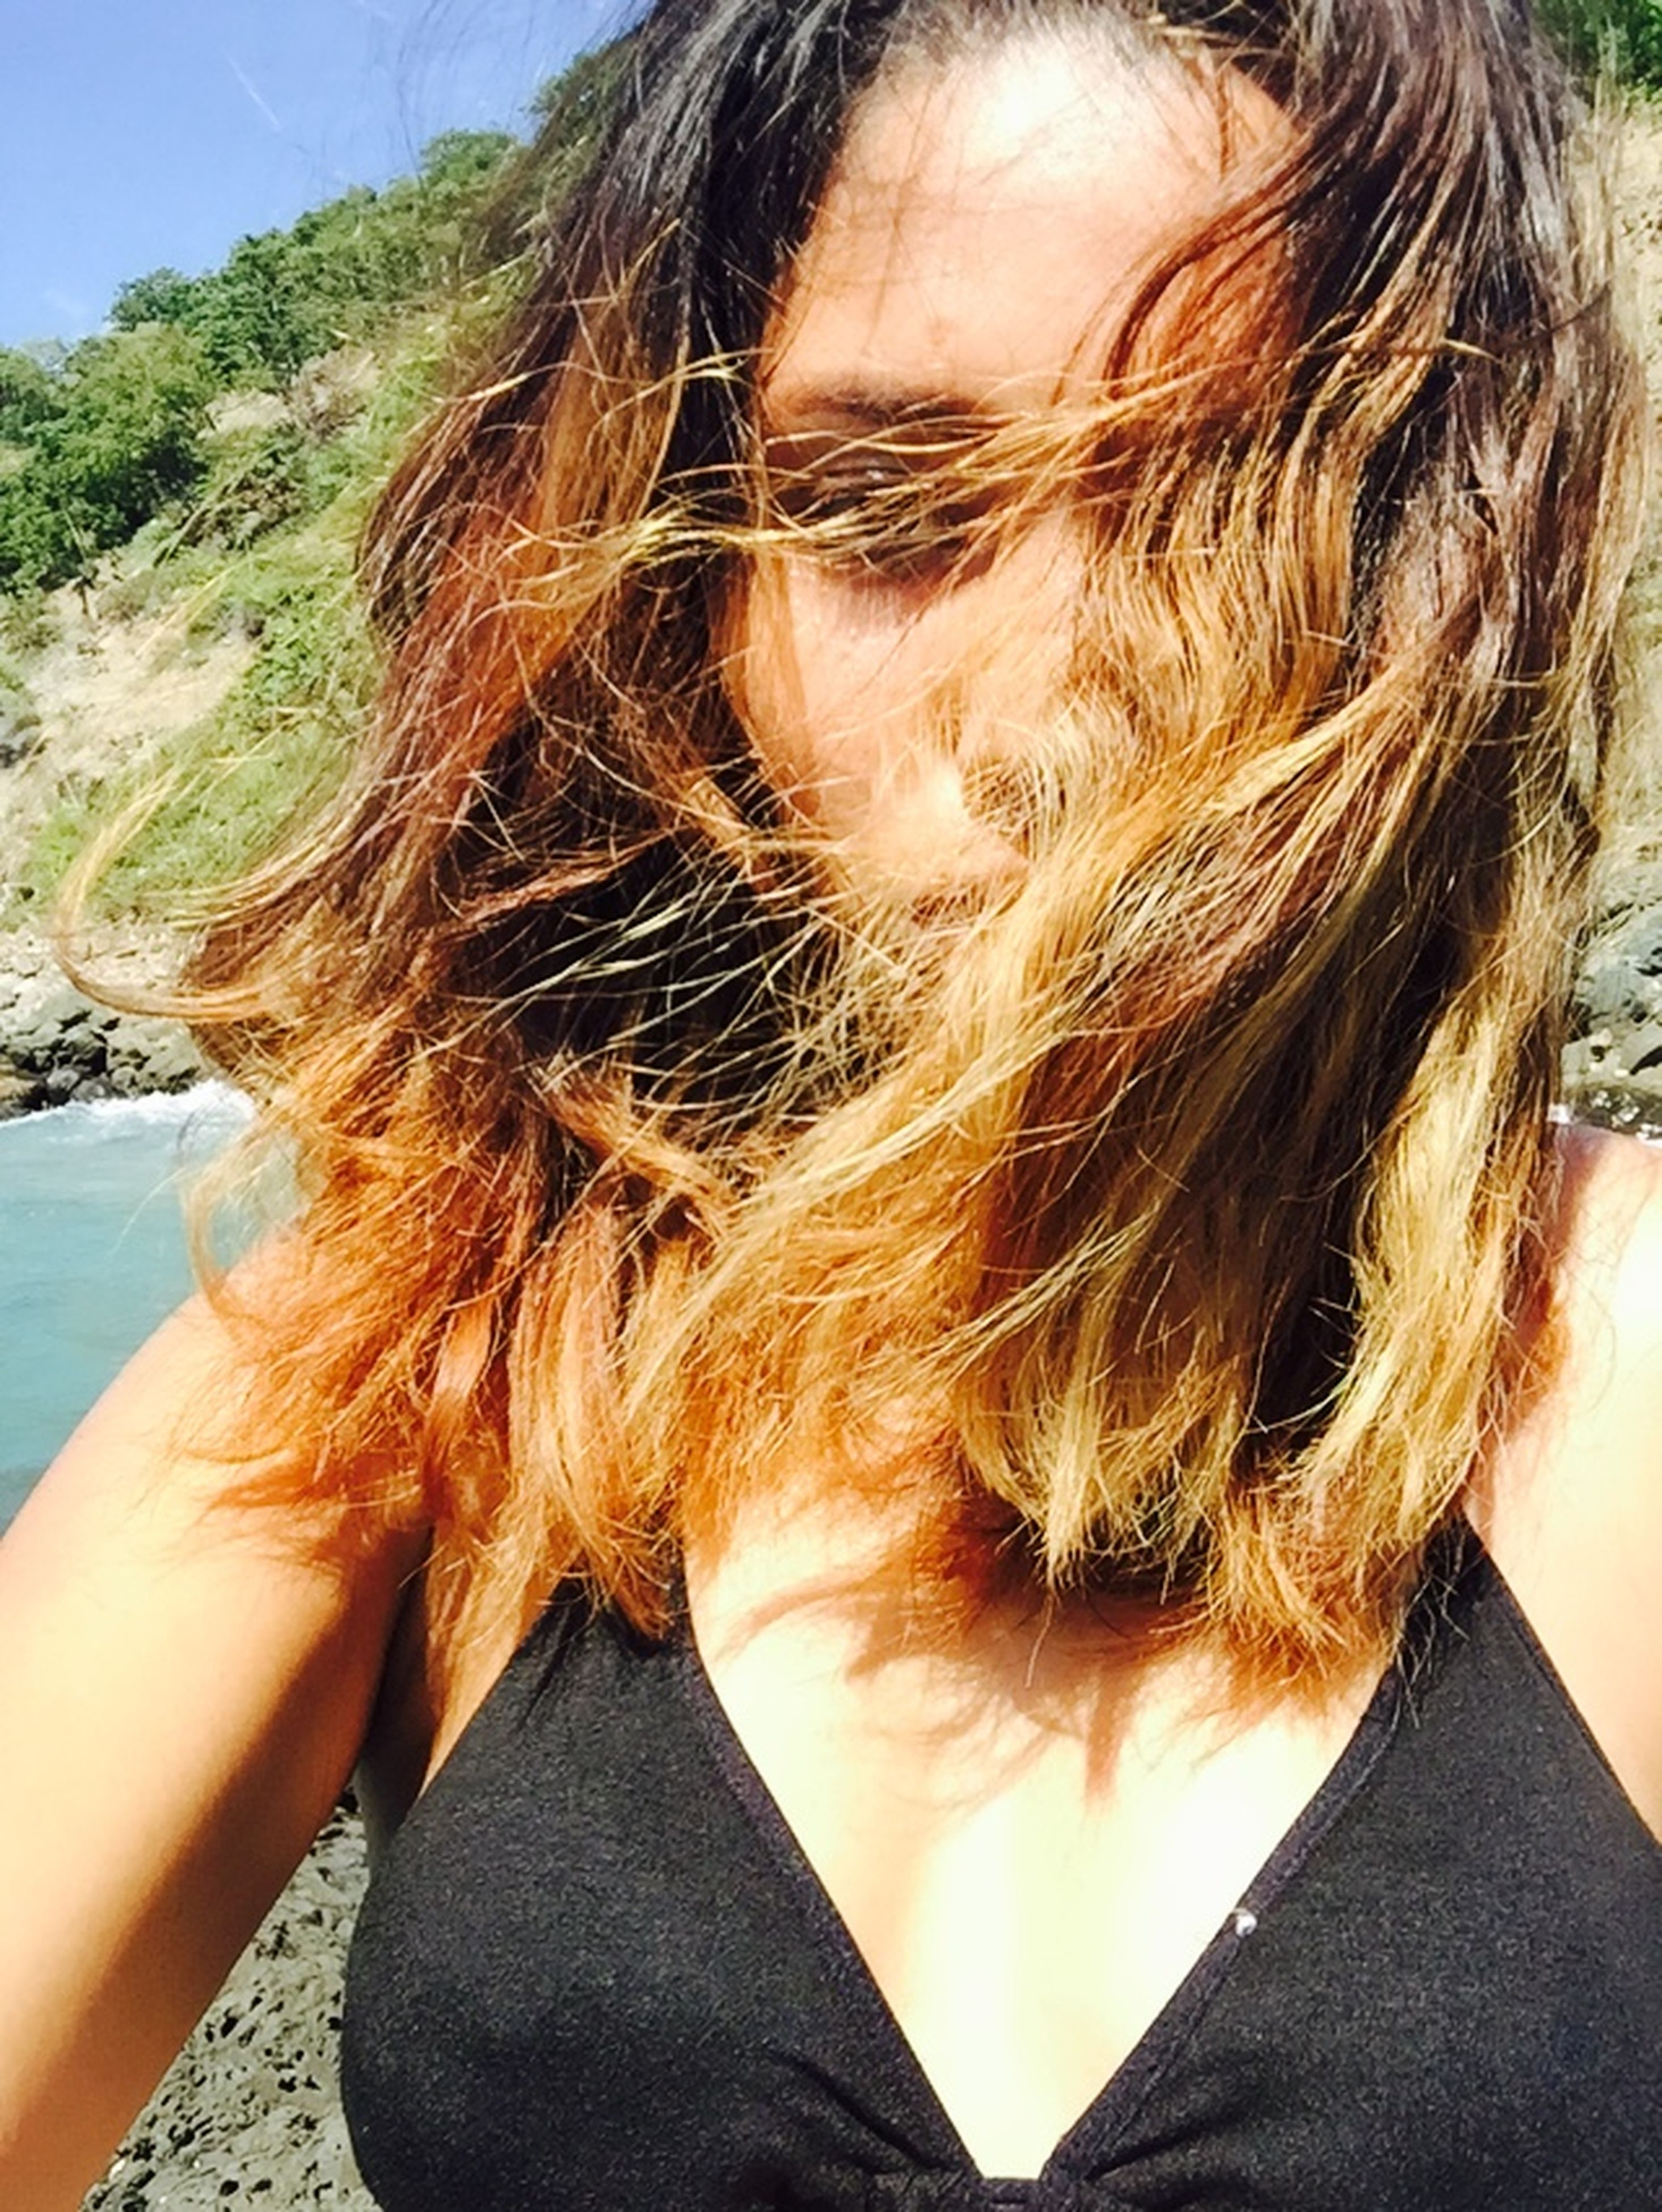 lifestyles, young adult, headshot, long hair, young women, leisure activity, sunlight, person, close-up, day, brown hair, sky, outdoors, head and shoulders, vacations, blond hair